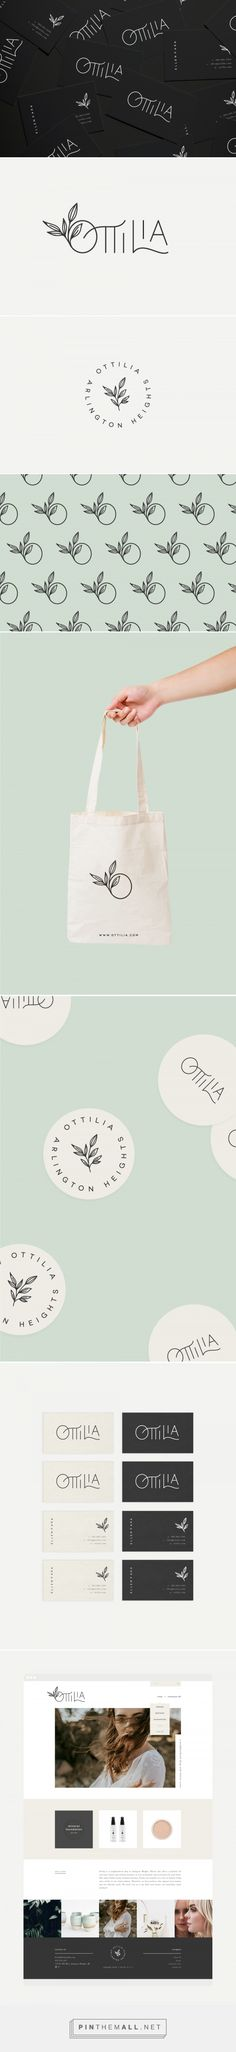 Ottilia Skincare Shop Branding by Rowan Made | Fivestar Branding Agency – Design and Branding Agency & Curated Inspiration Gallery #branding #brandingdesign #brand #businesscards #design #designinspiration